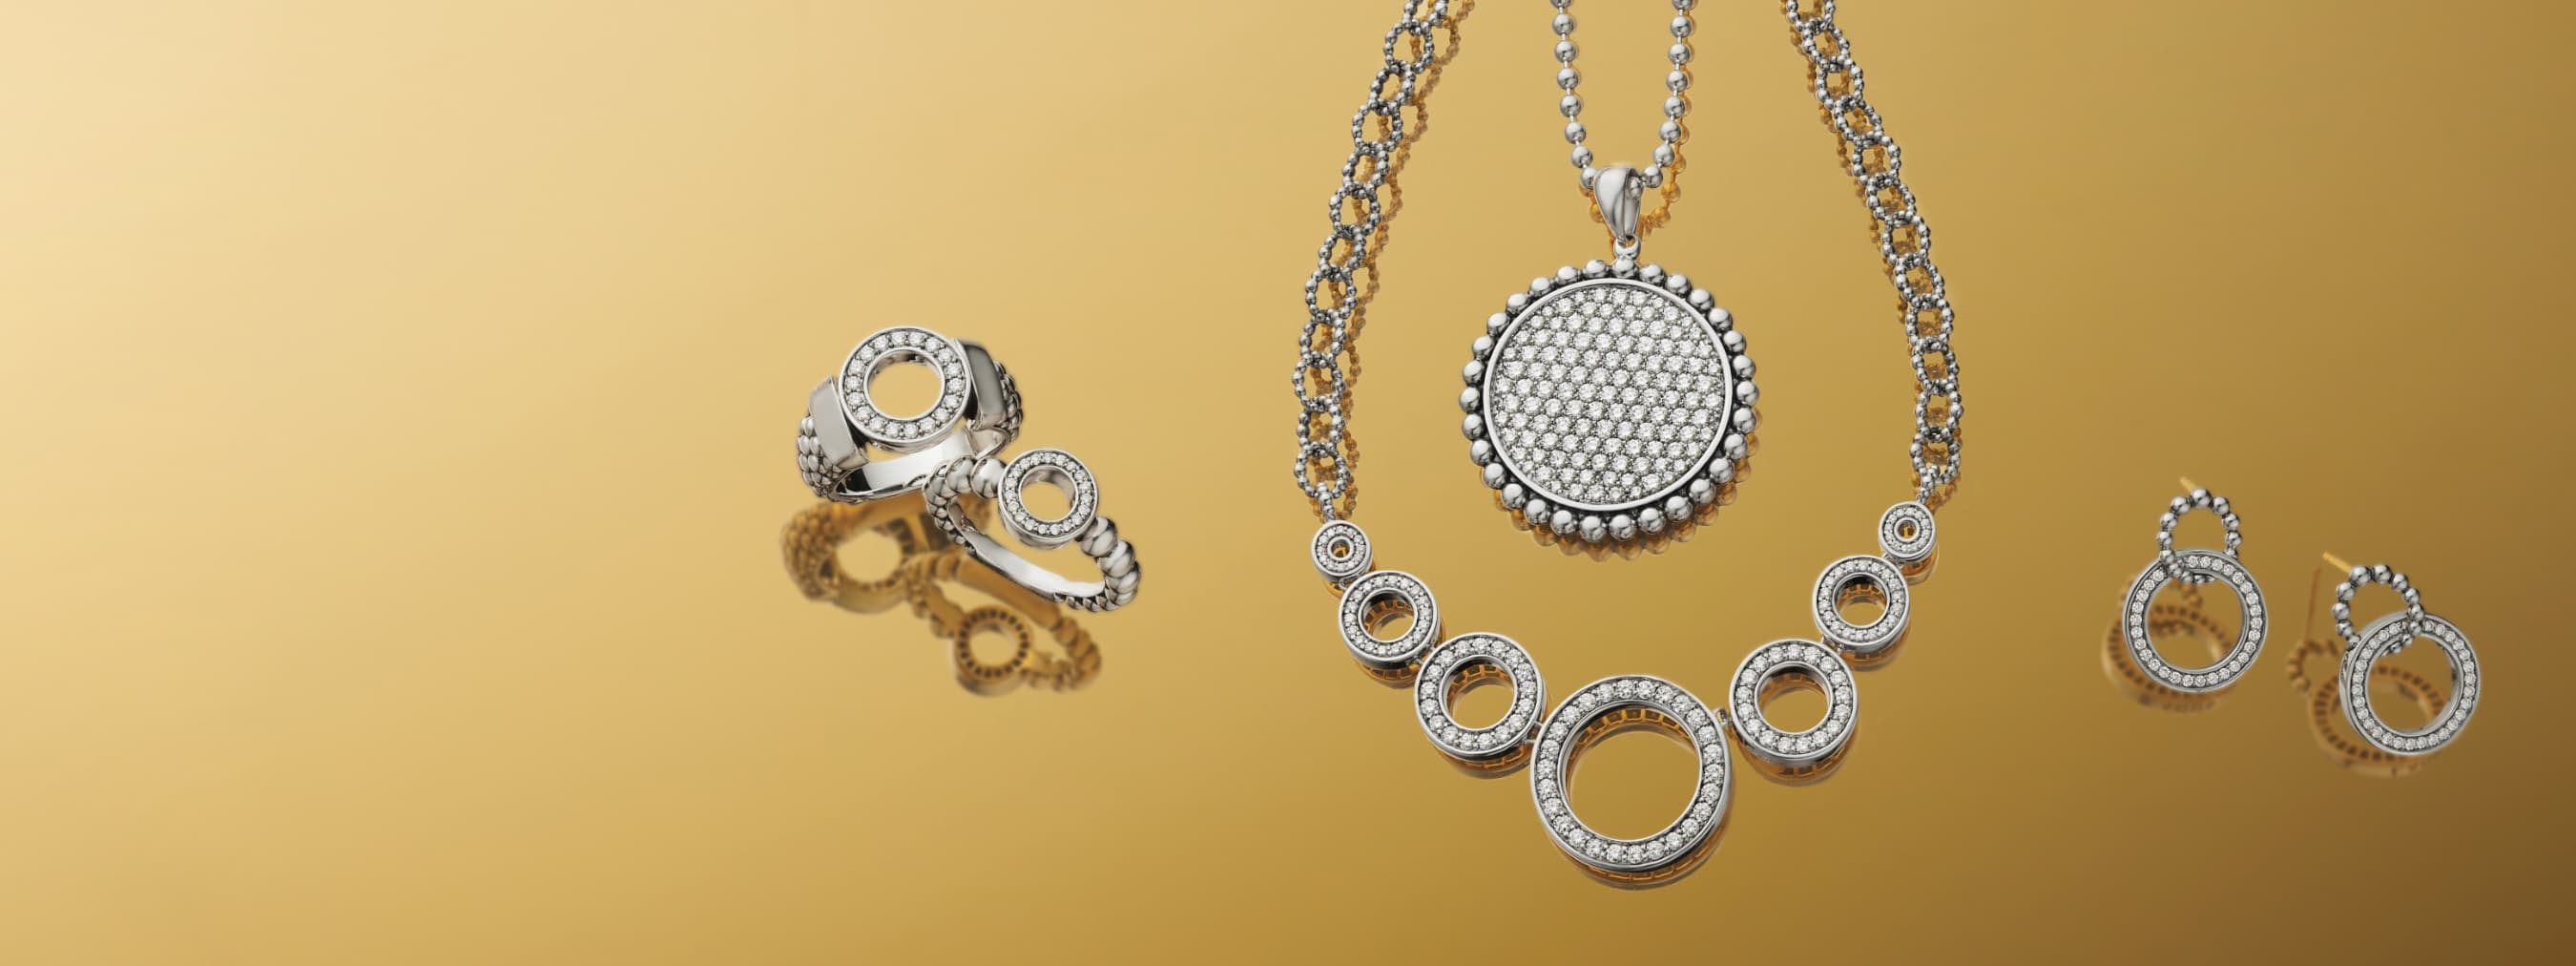 Necklaces, bracelets and rings featuring Caviar beading in fold, silver and blue or white cermaic style.